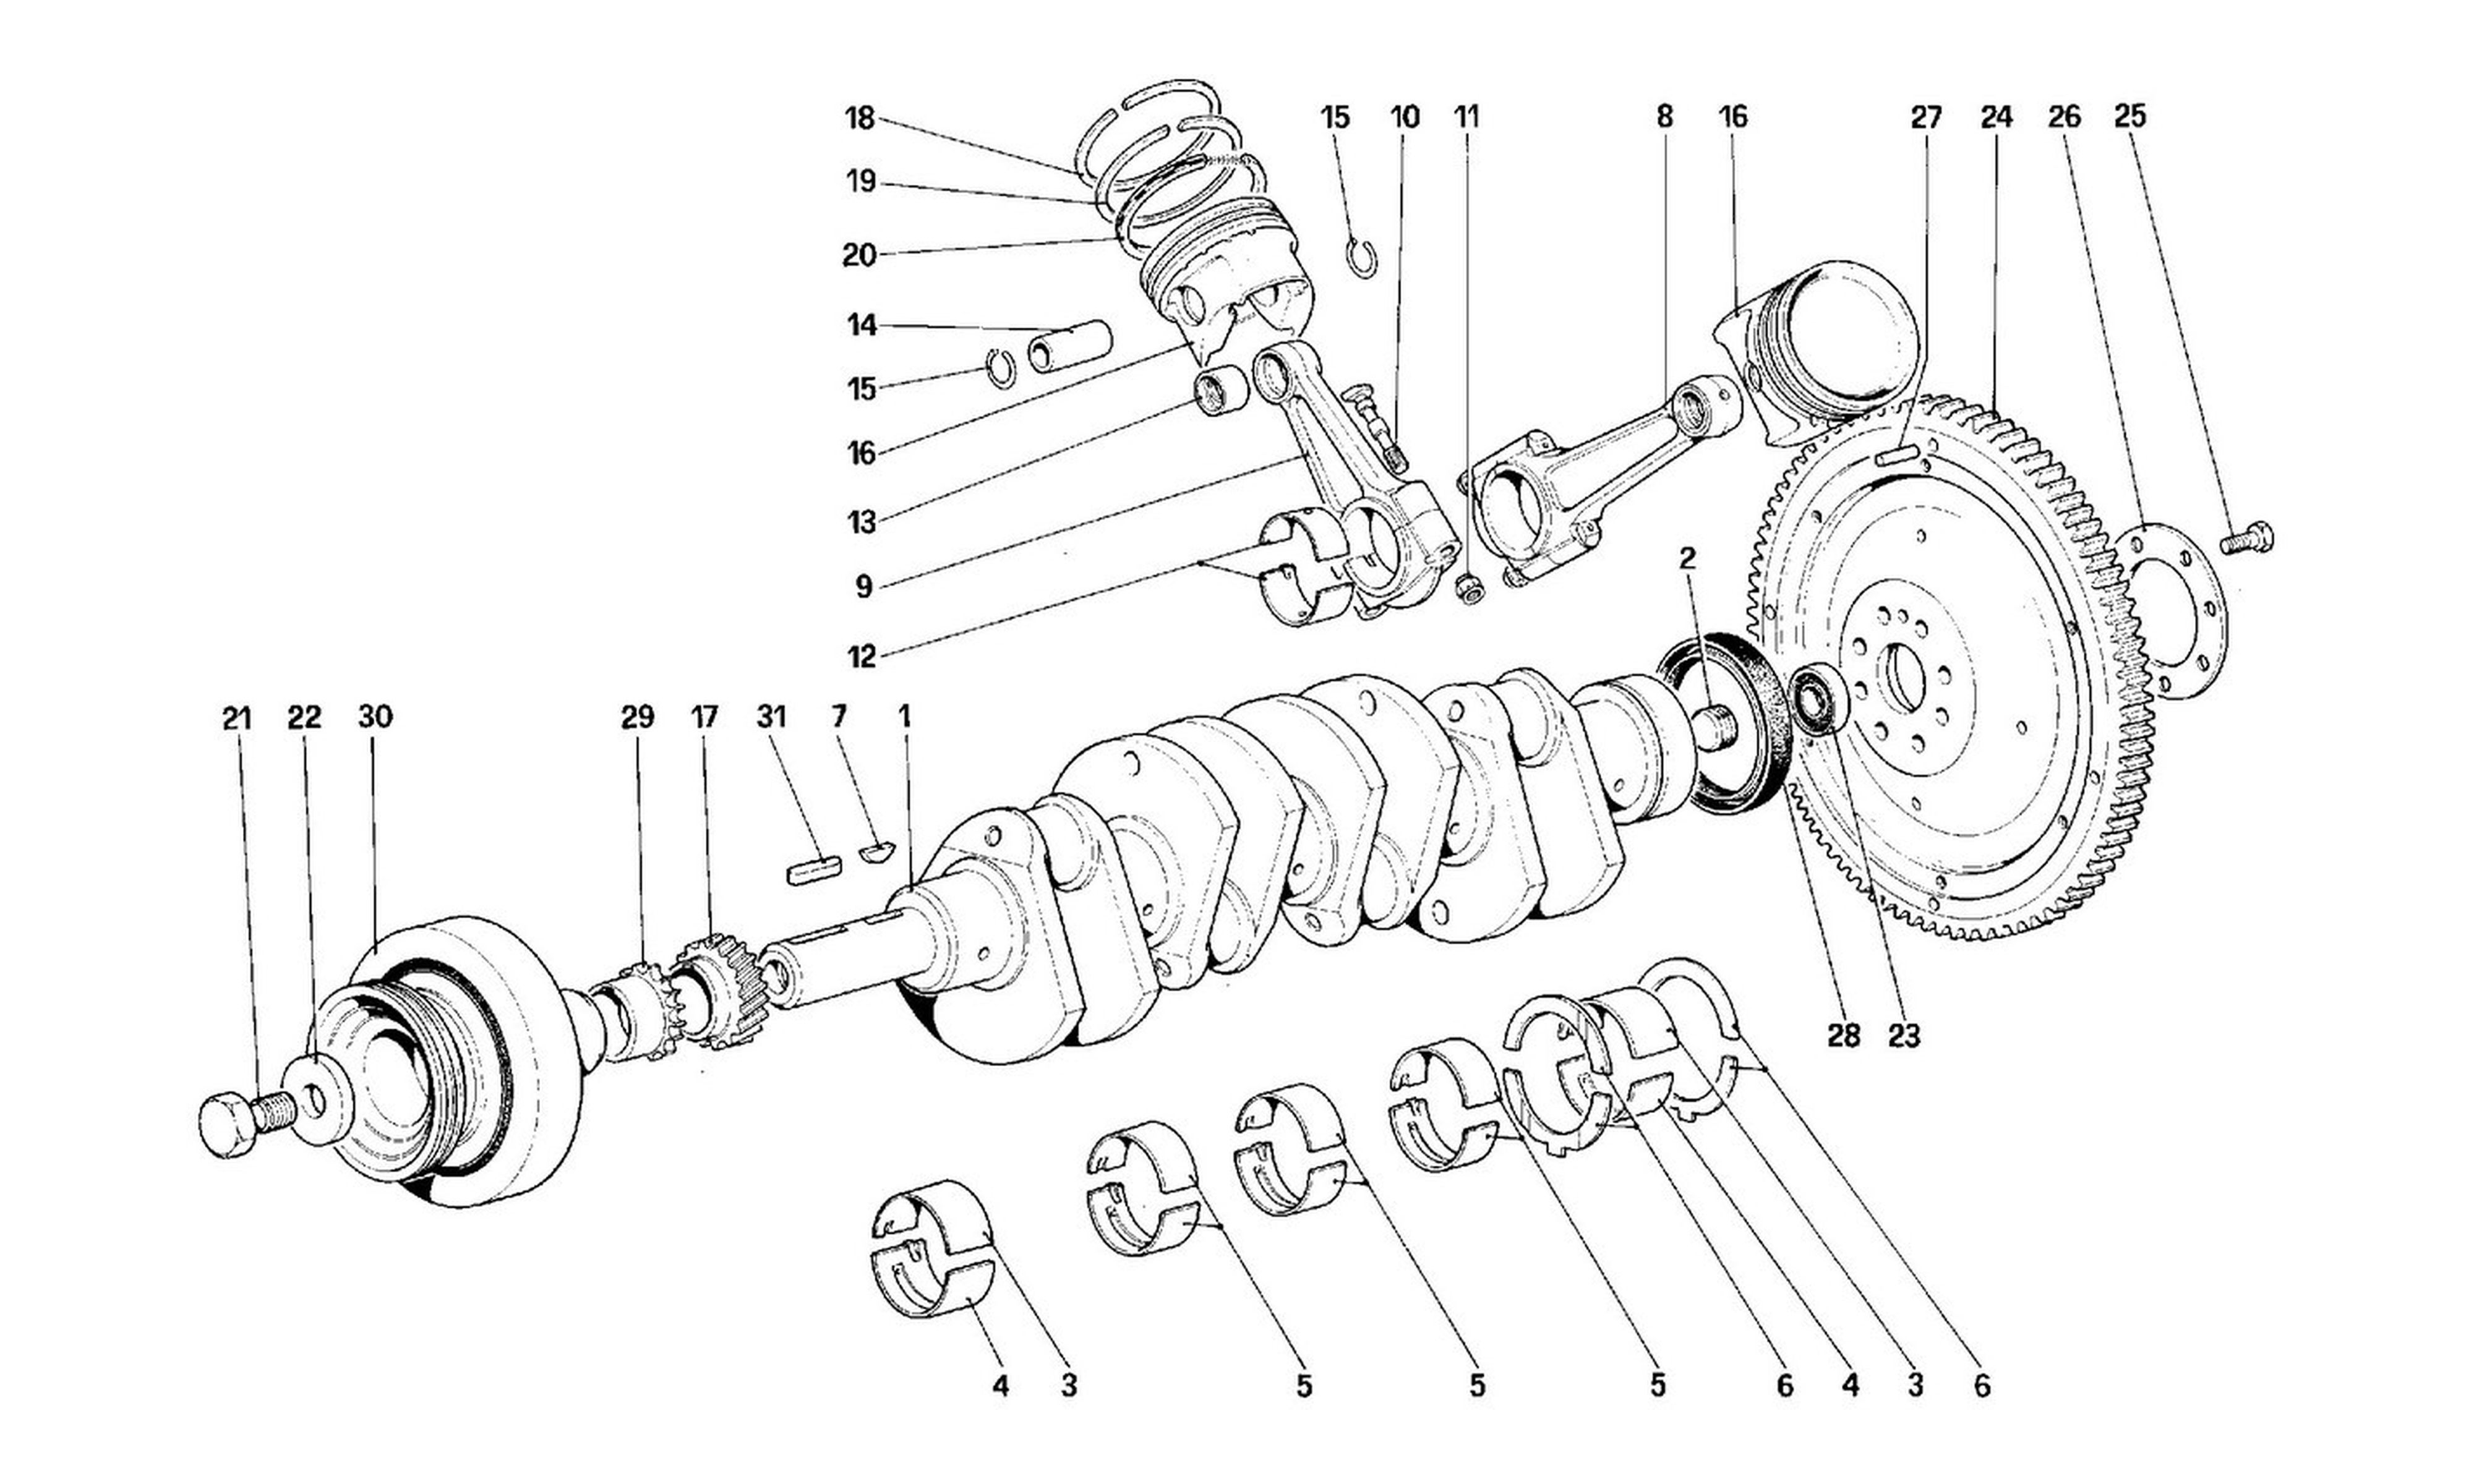 Table 2 - Driving Shaft - Connecting Rods And Pistons - Motor Flywheel